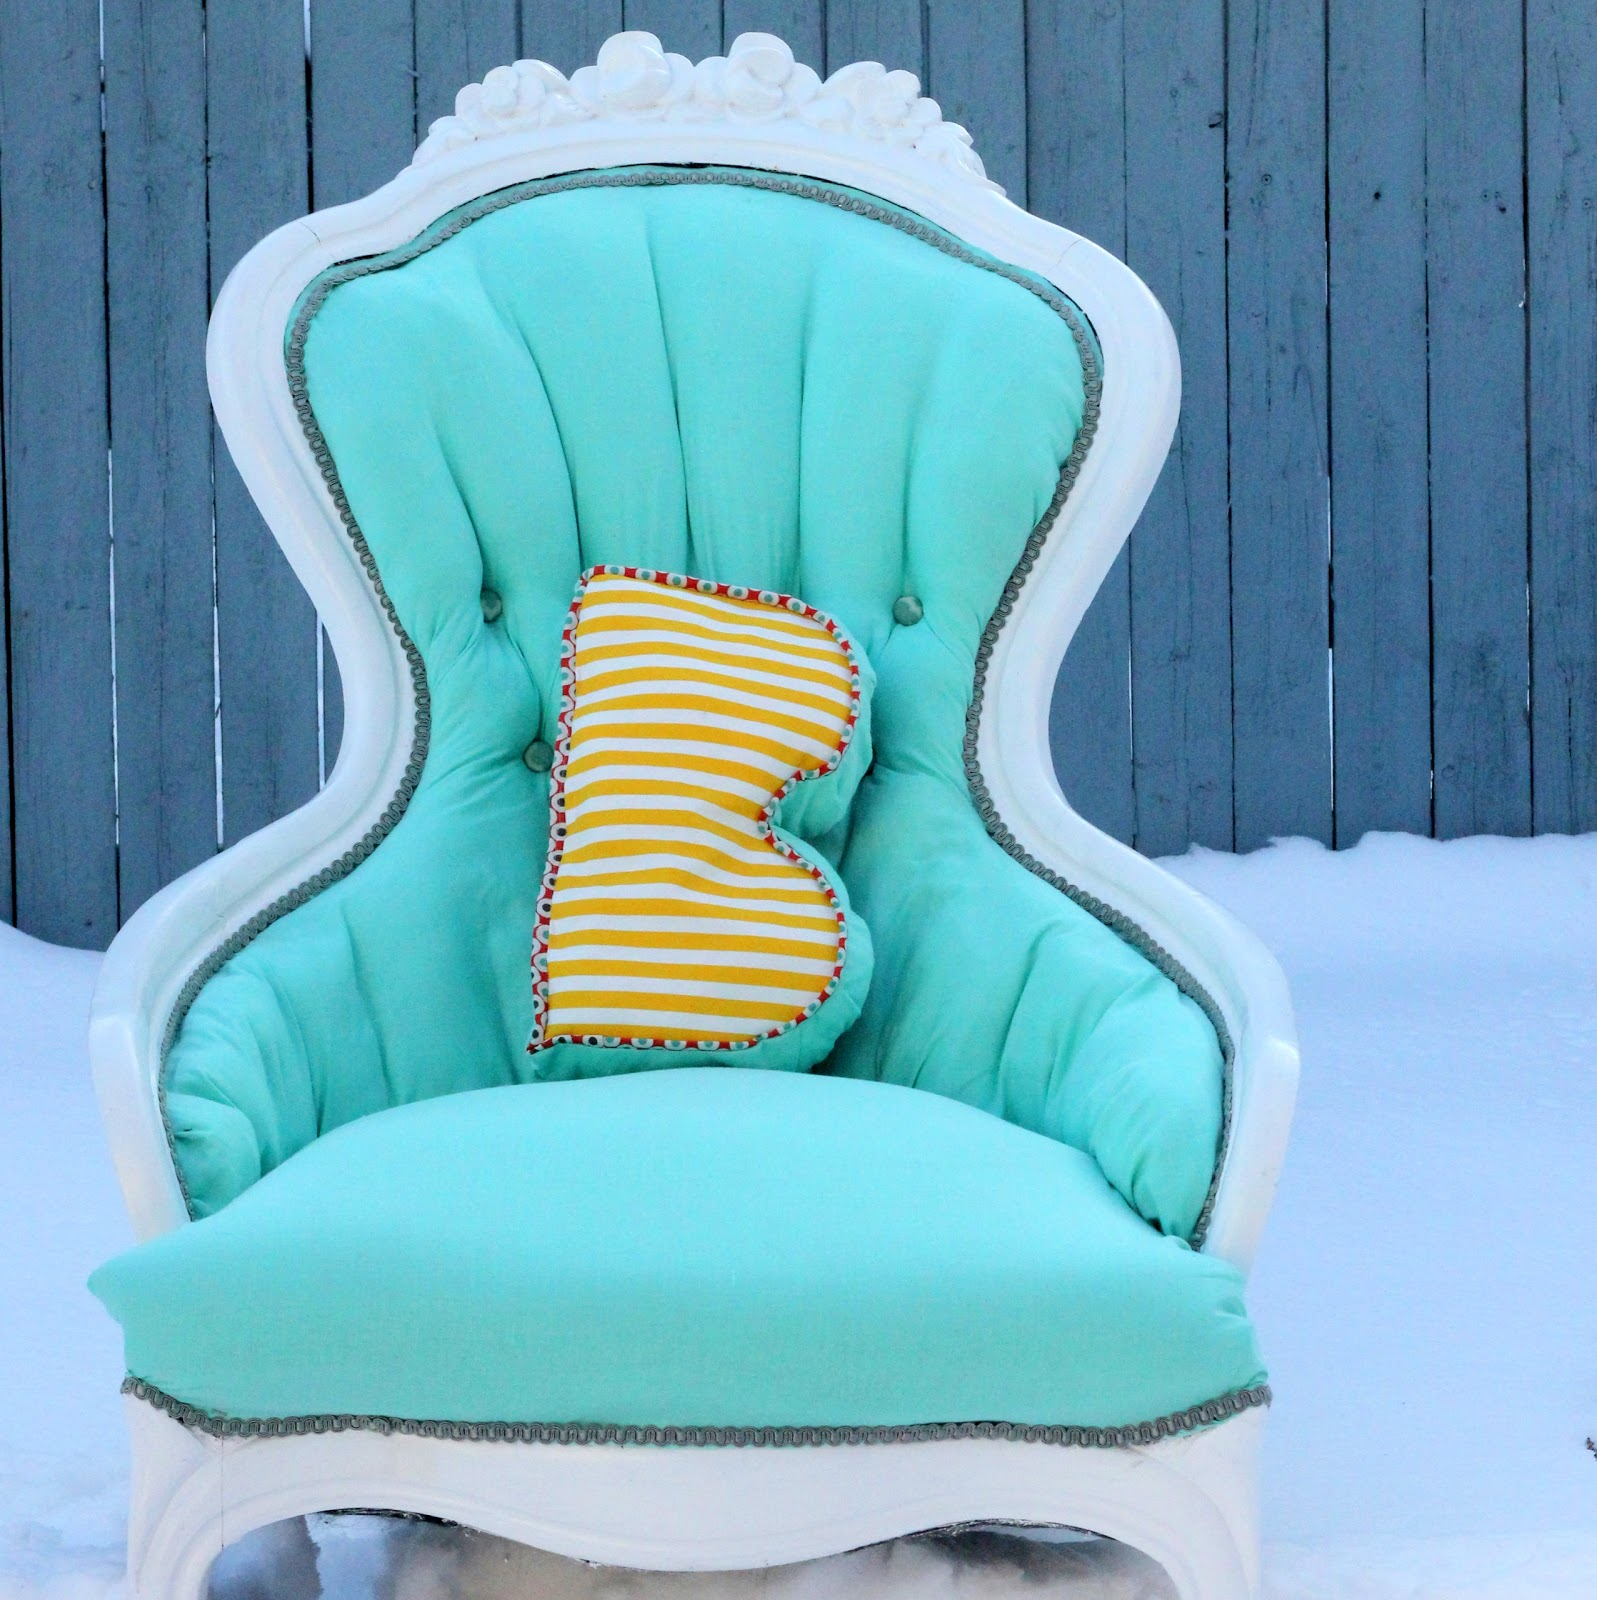 A Vintage Girly Chair Redo For Piper Jane